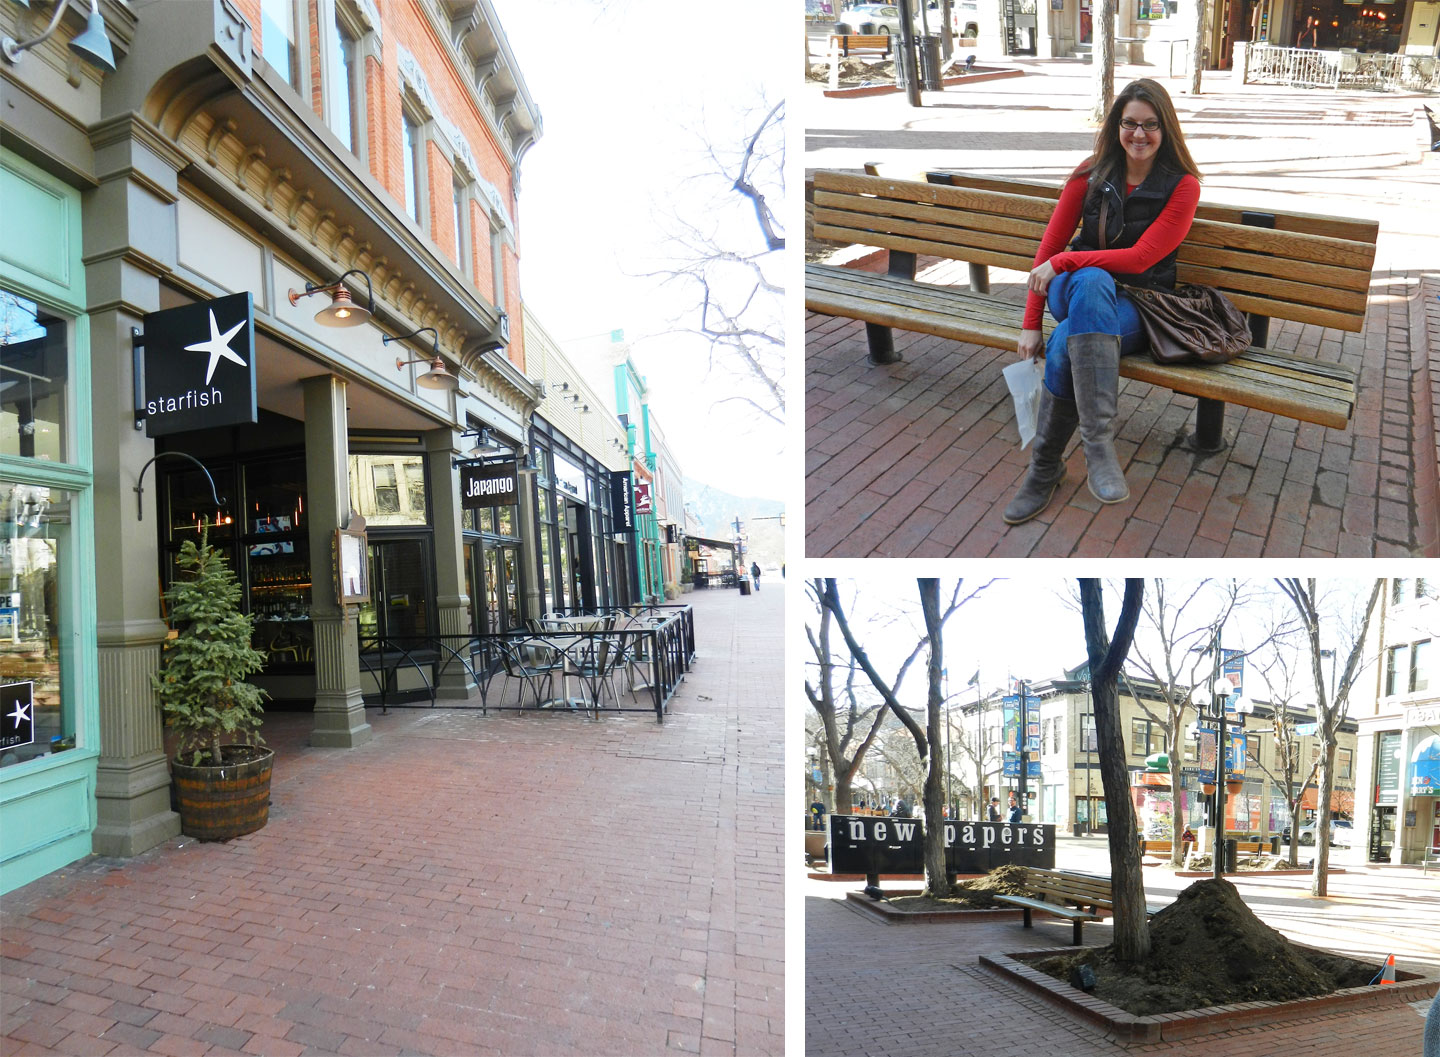 Pearl Street in Boulder, Colorado | The Postman's Knock